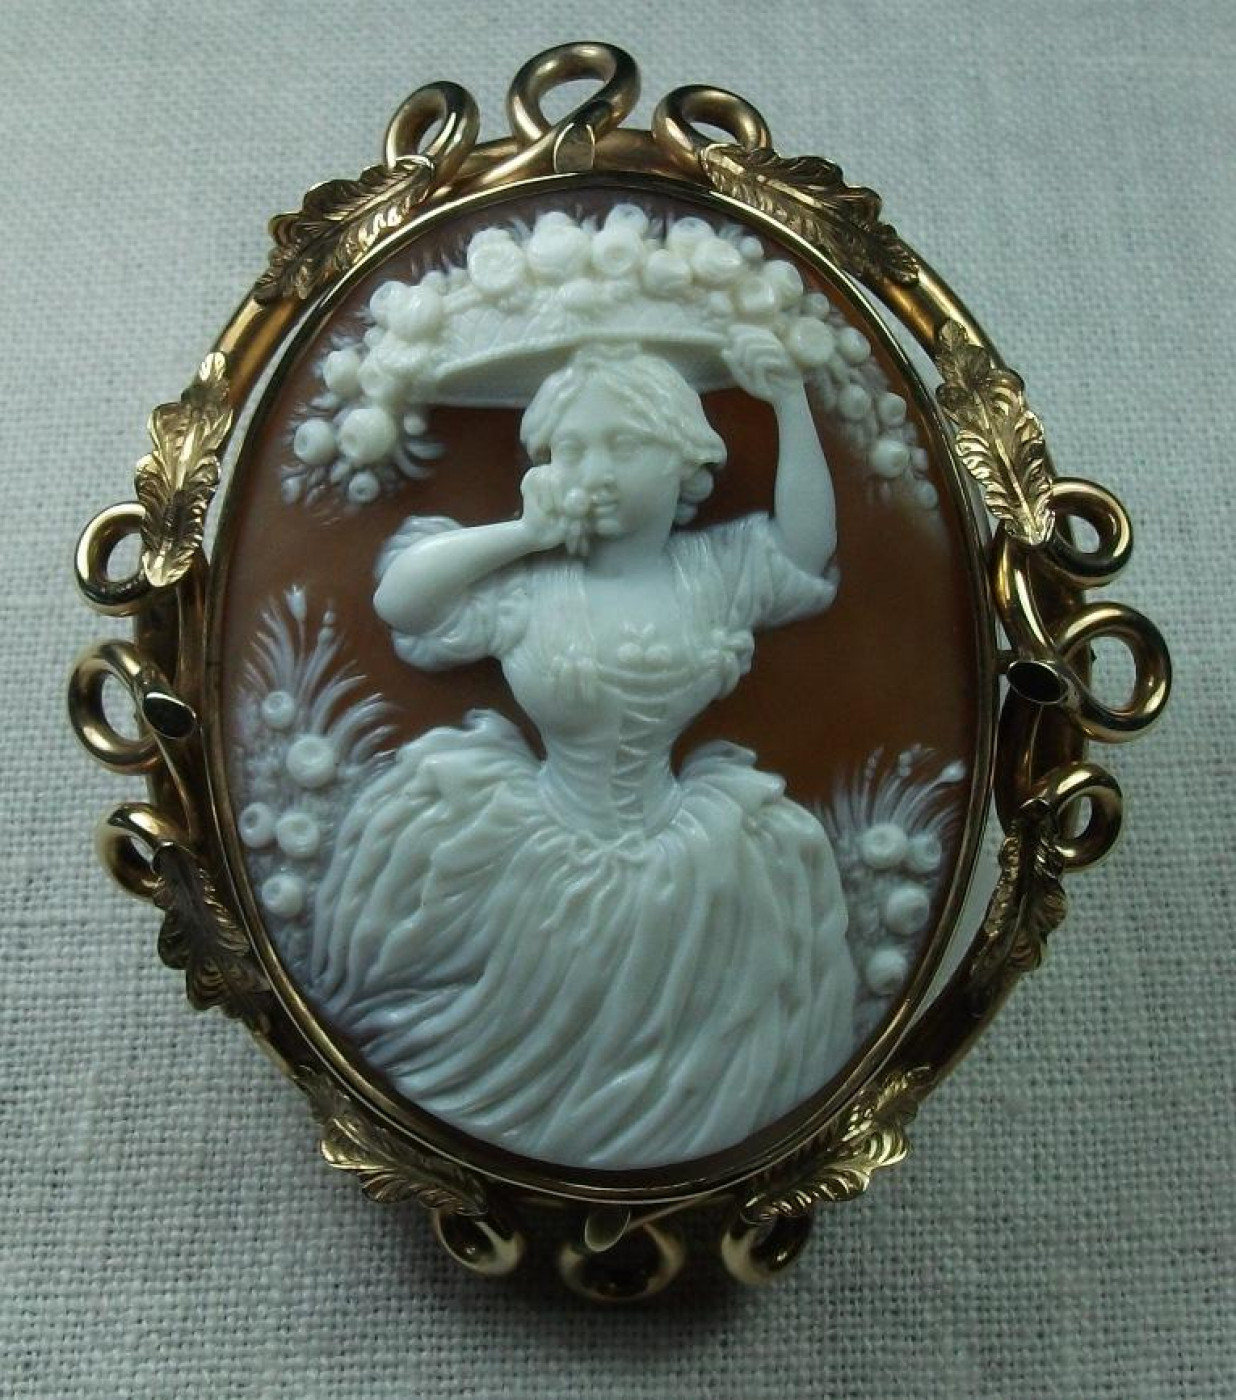 Fabulous Cameo of the Allegory of the Spring